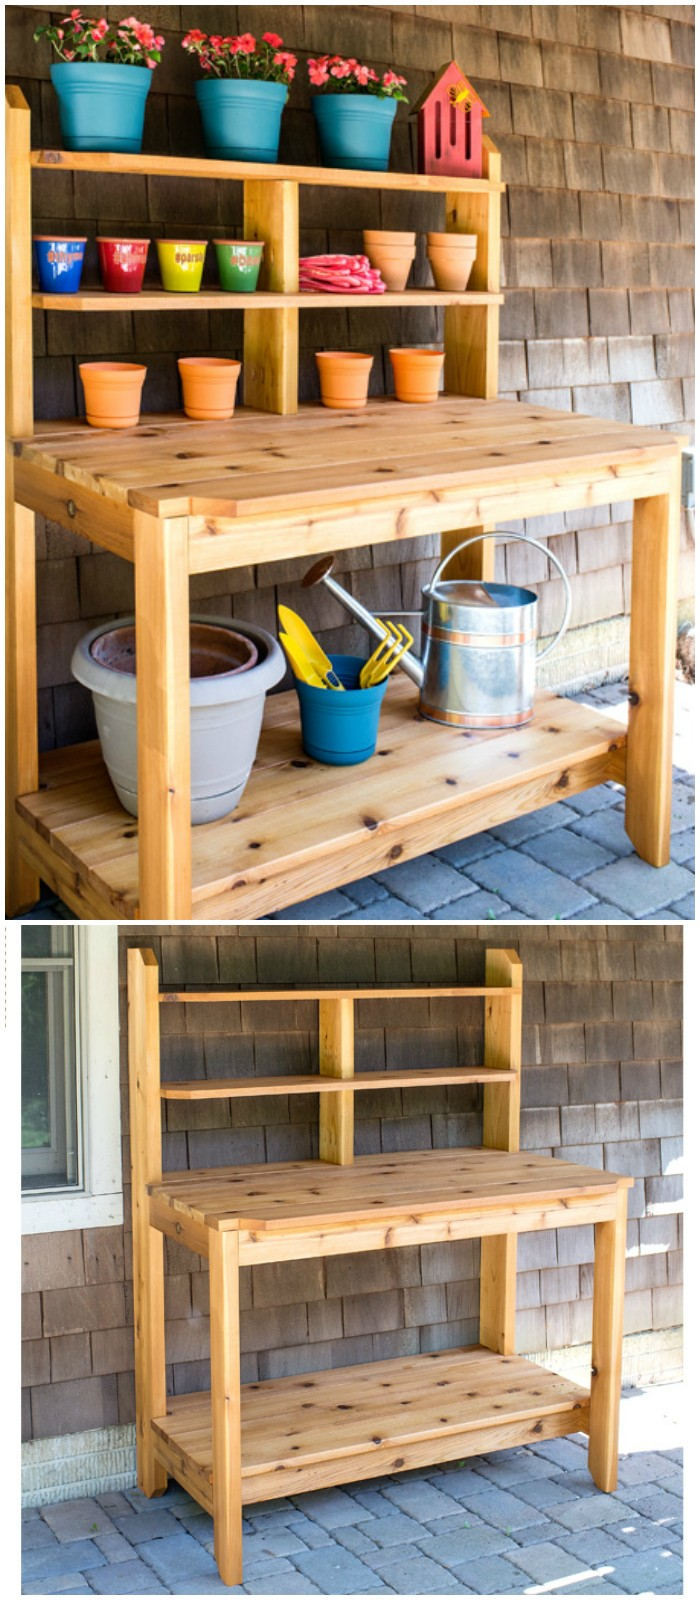 Cottage Garden Planter's Stand